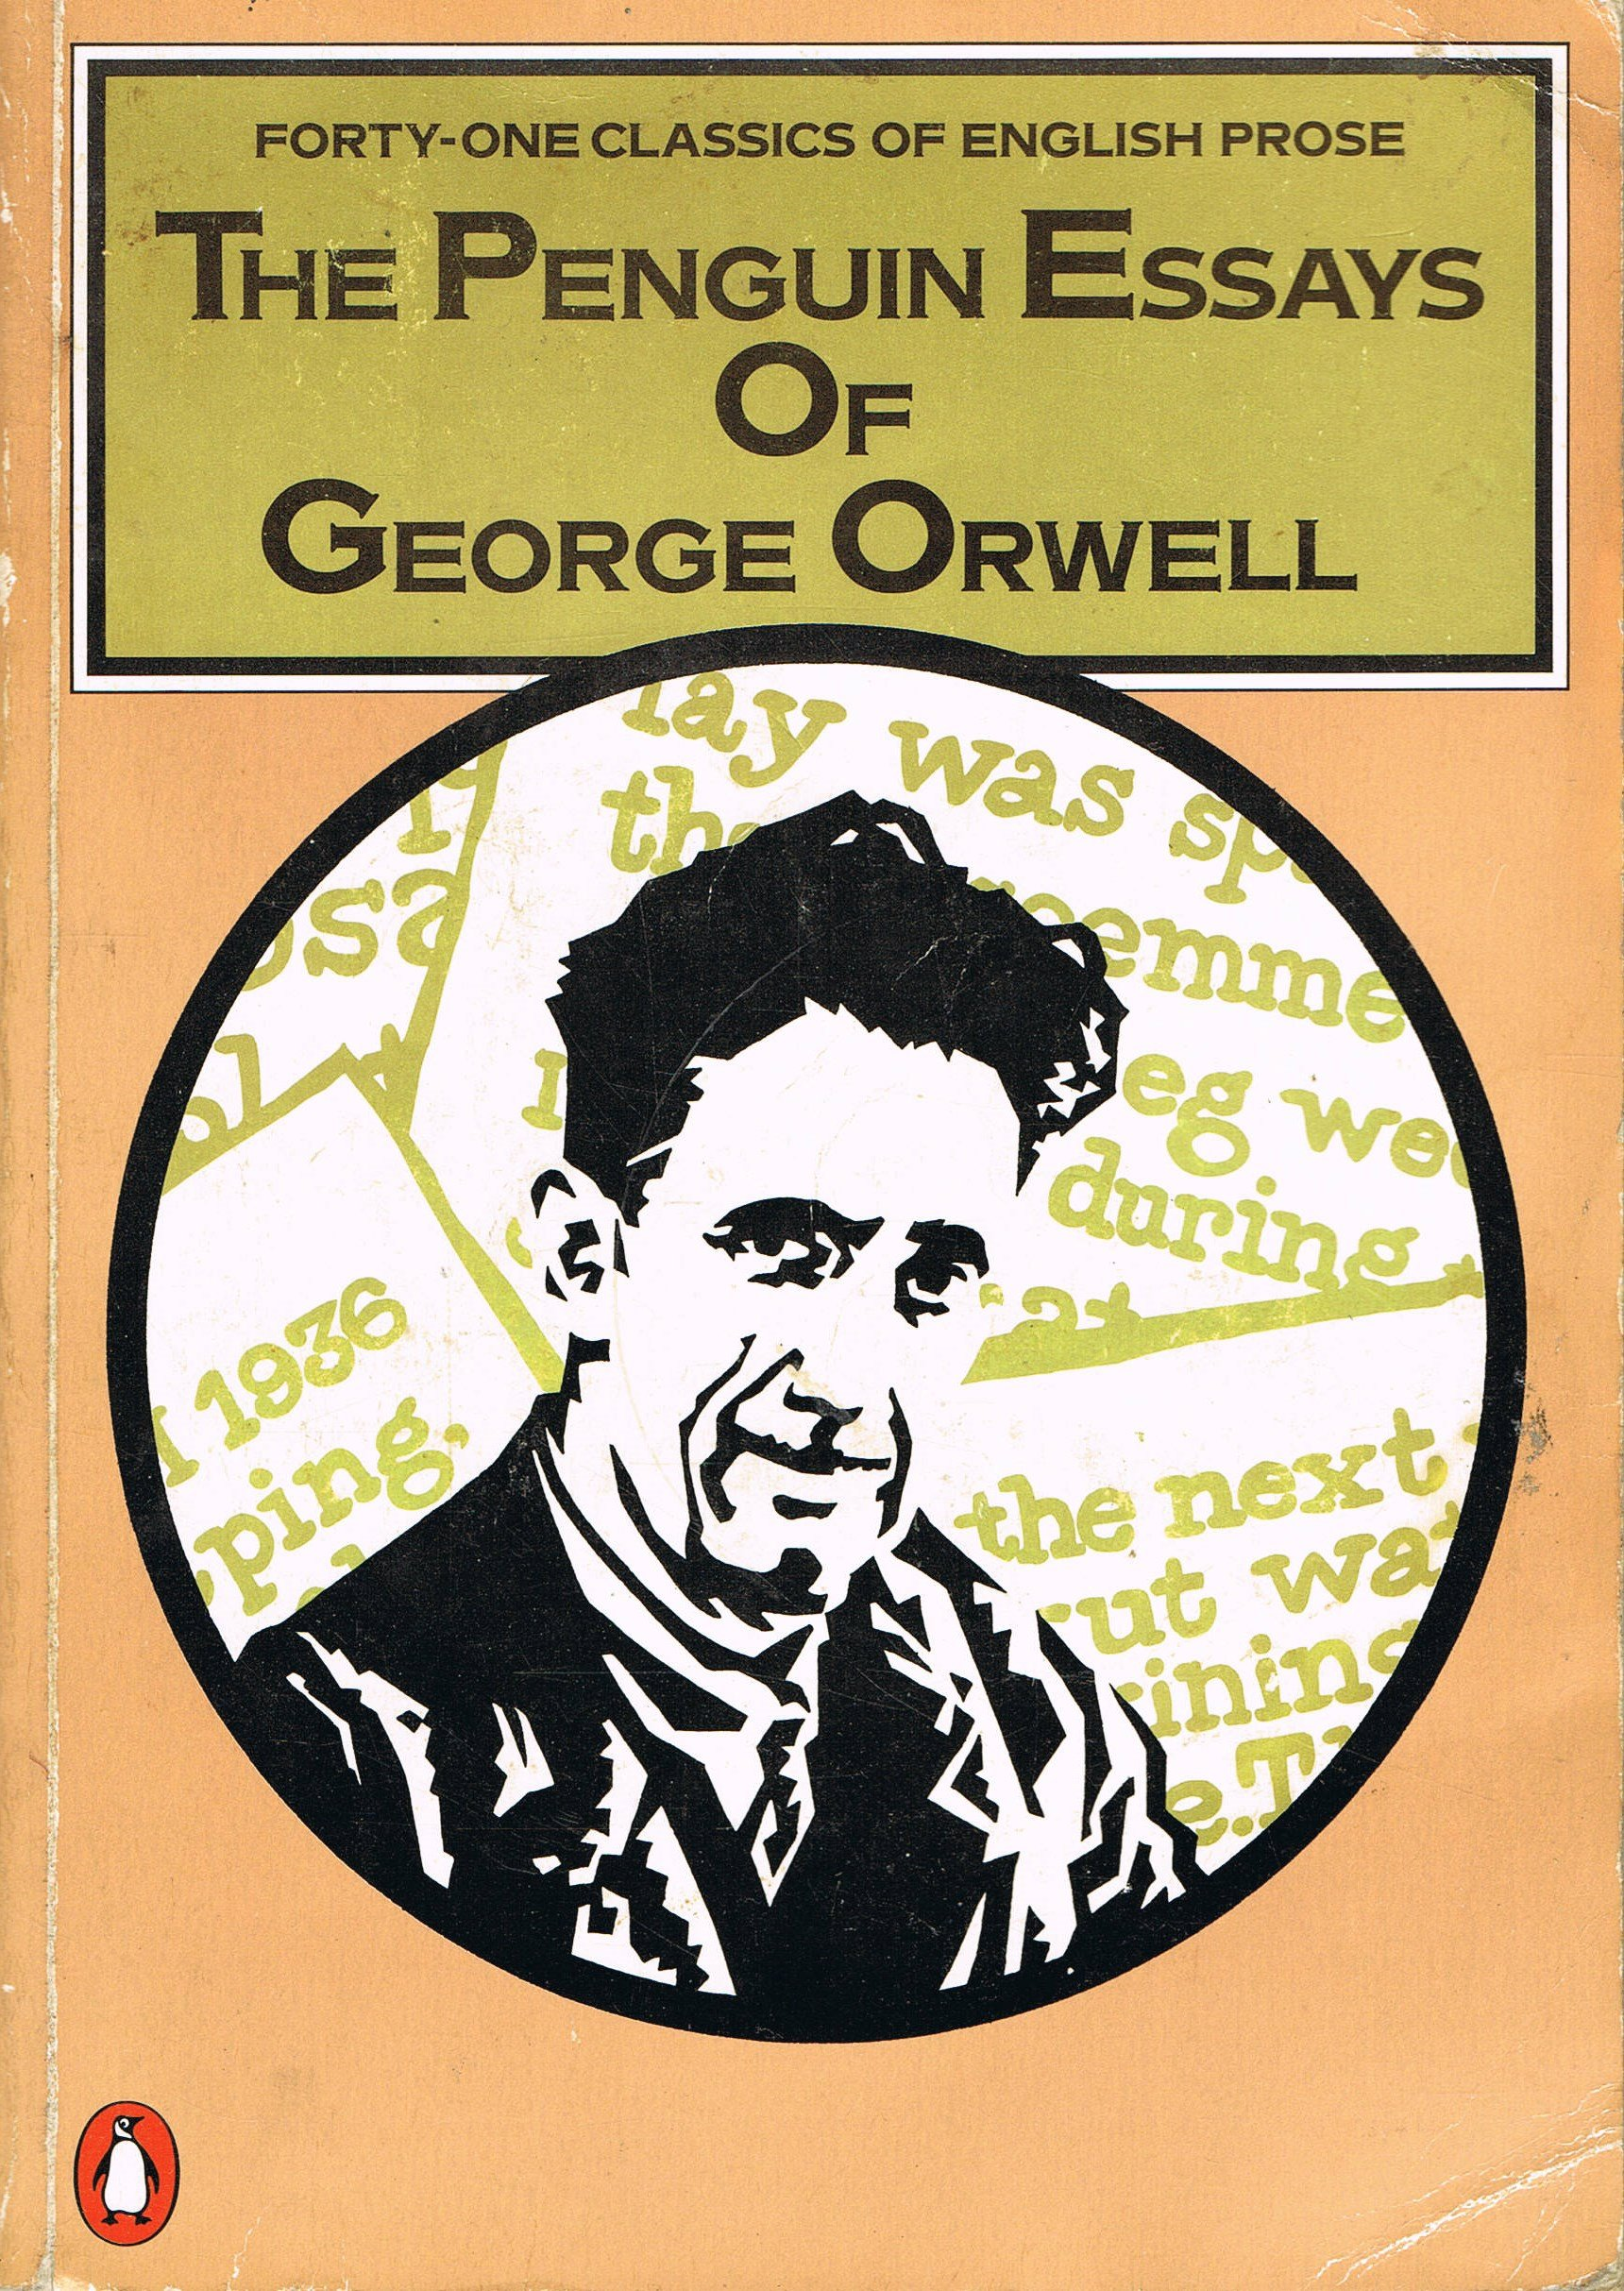 Essay On Woman The Penguin Essays Of George Orwell Co Uk George Orwell The Penguin Essays  Of George Orwell Obesity Essay Conclusion also Dominant Impression Essay Essays George Orwell Andy Gardner Historian Islington Faces George  Essays On Legalizing Marijuana